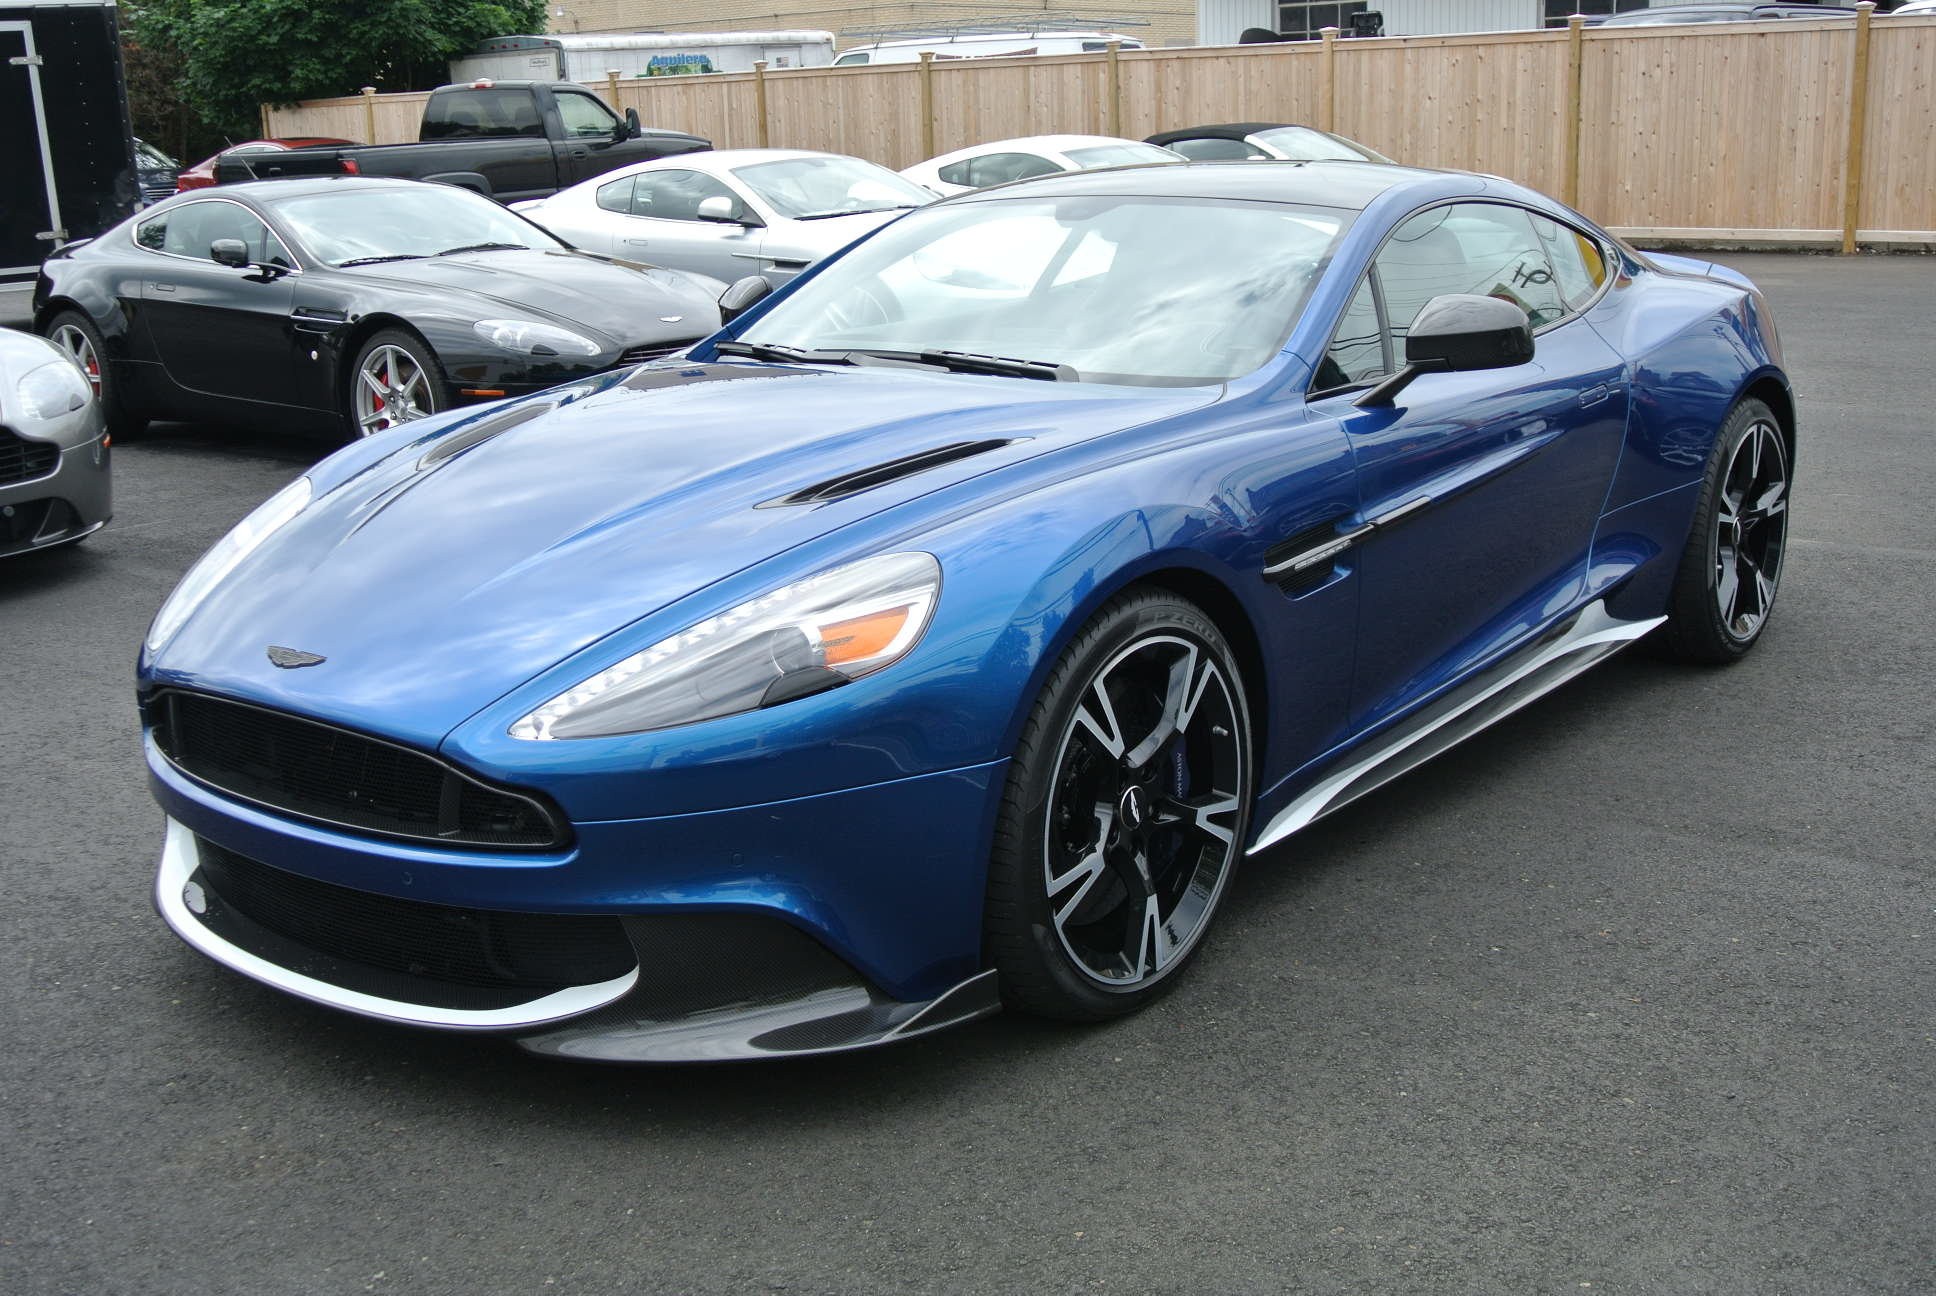 Special offer on 2018 Aston Vanquish 2018 Vanquish S Coupe